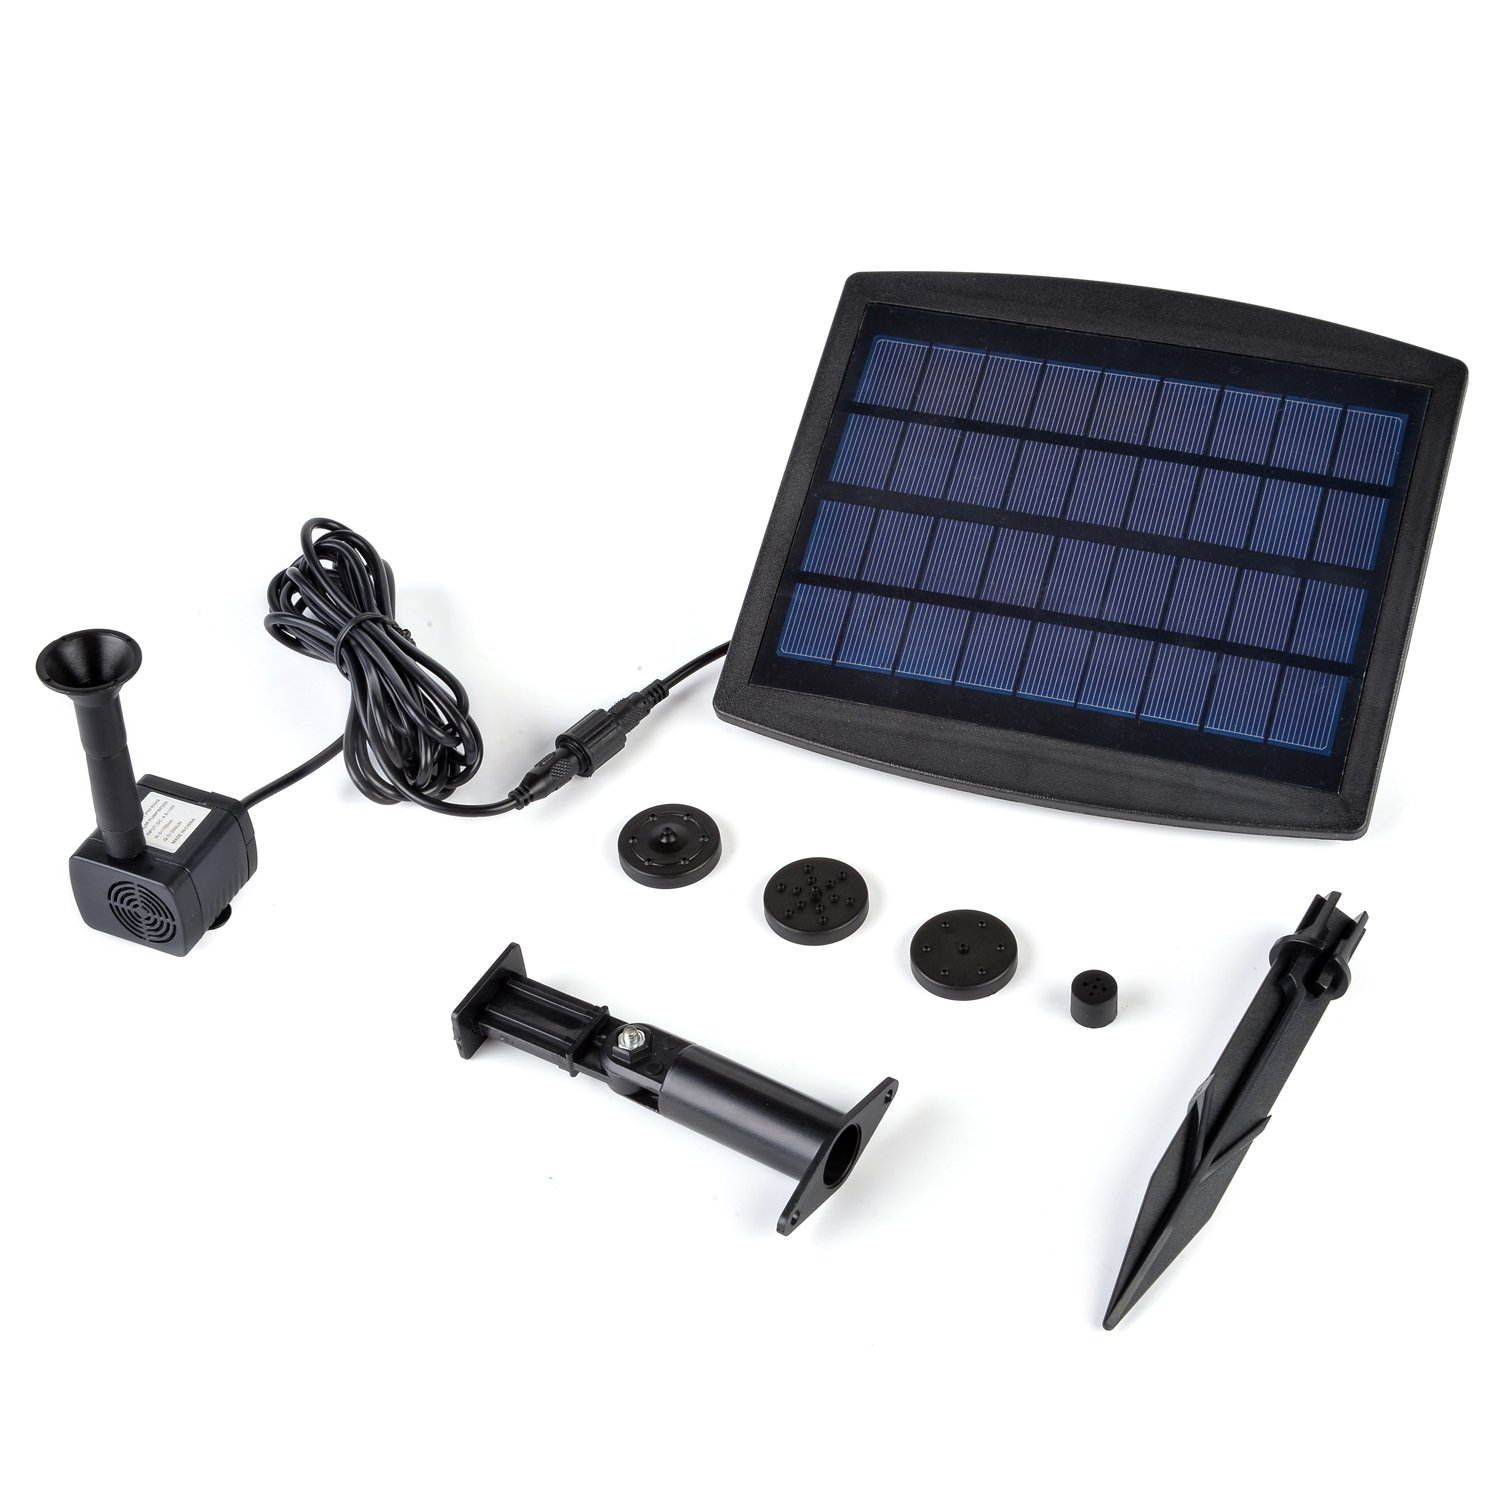 Weanas 9V 2.5W Solar Powered Water Pump Built-in Storage Battery Backup Brushless Submersible Pump Motor Solar Energy Garden Fountain Pond Plants Pool